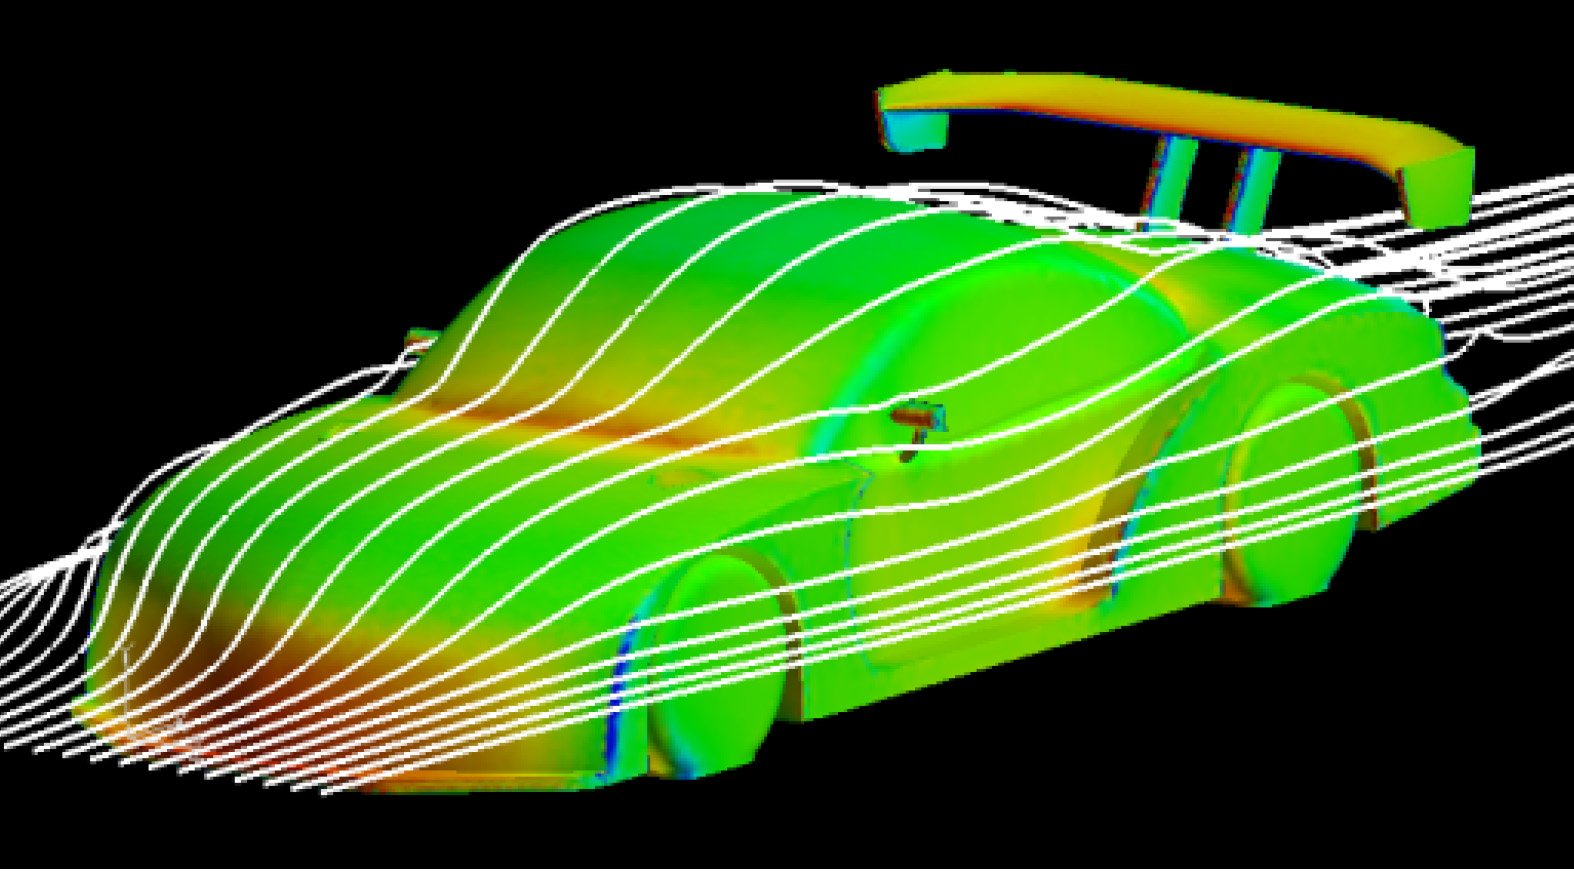 Investigation of Flow Phenomena and Application to Car Technology